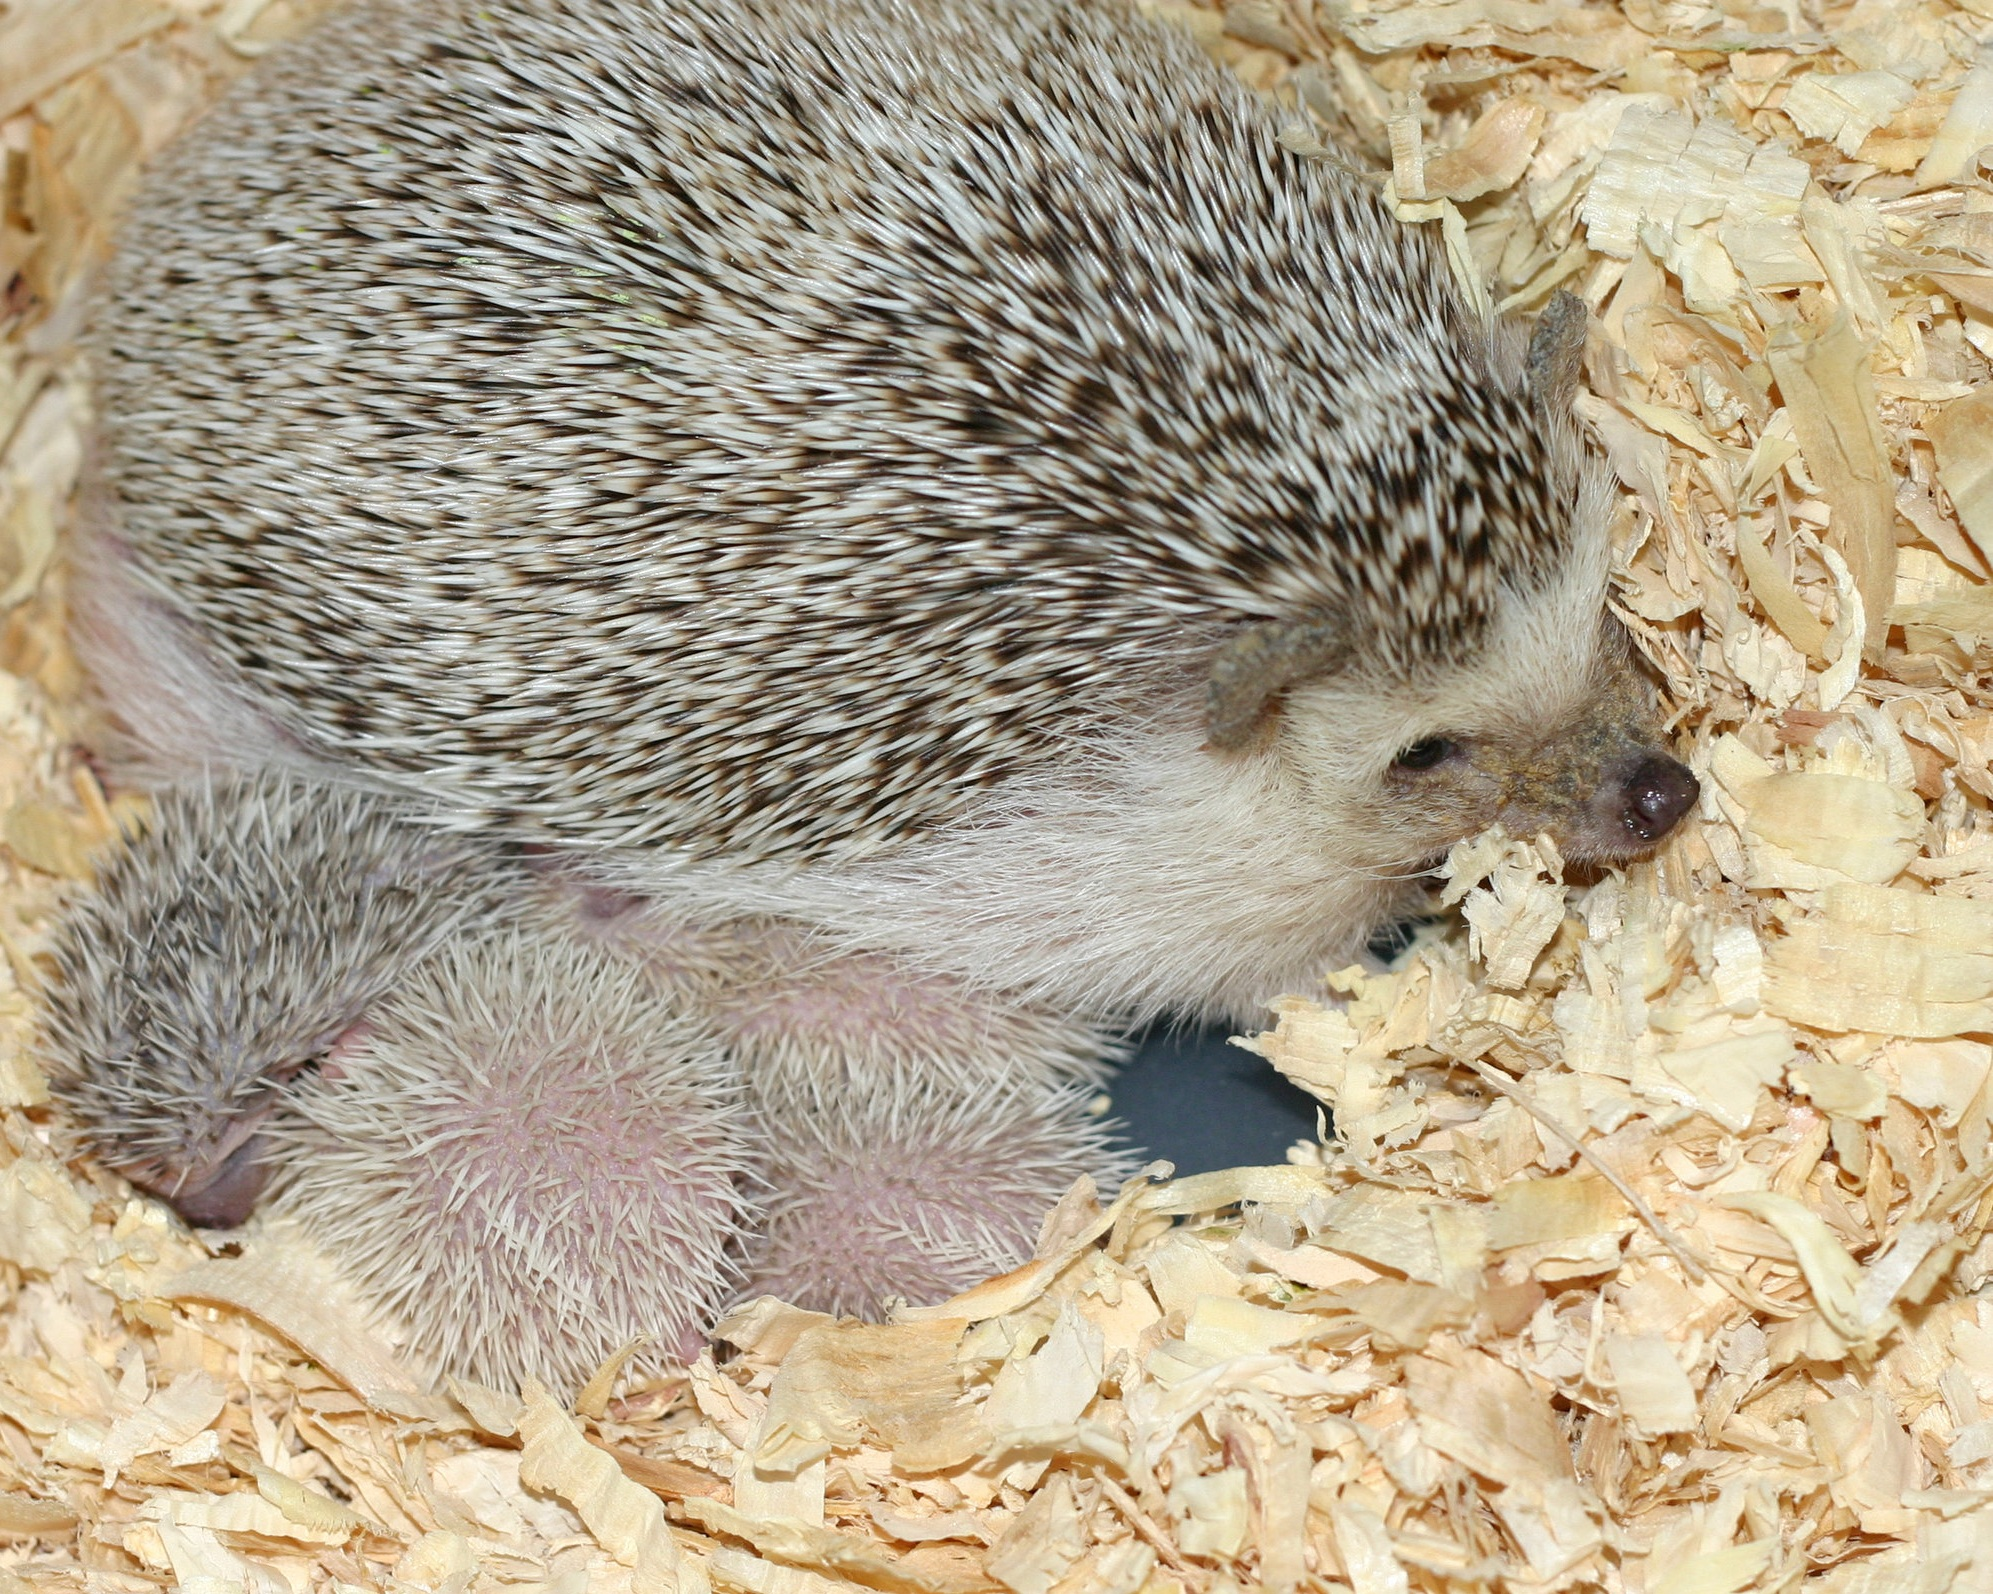 HEDGEHOG PRICES - ALL HEDGEHOGS COST $260. EASY PEASY!WE DON'T CHARGE EXTRA BASED ON GENDER, RARE MARKINGS, OR COLOR.